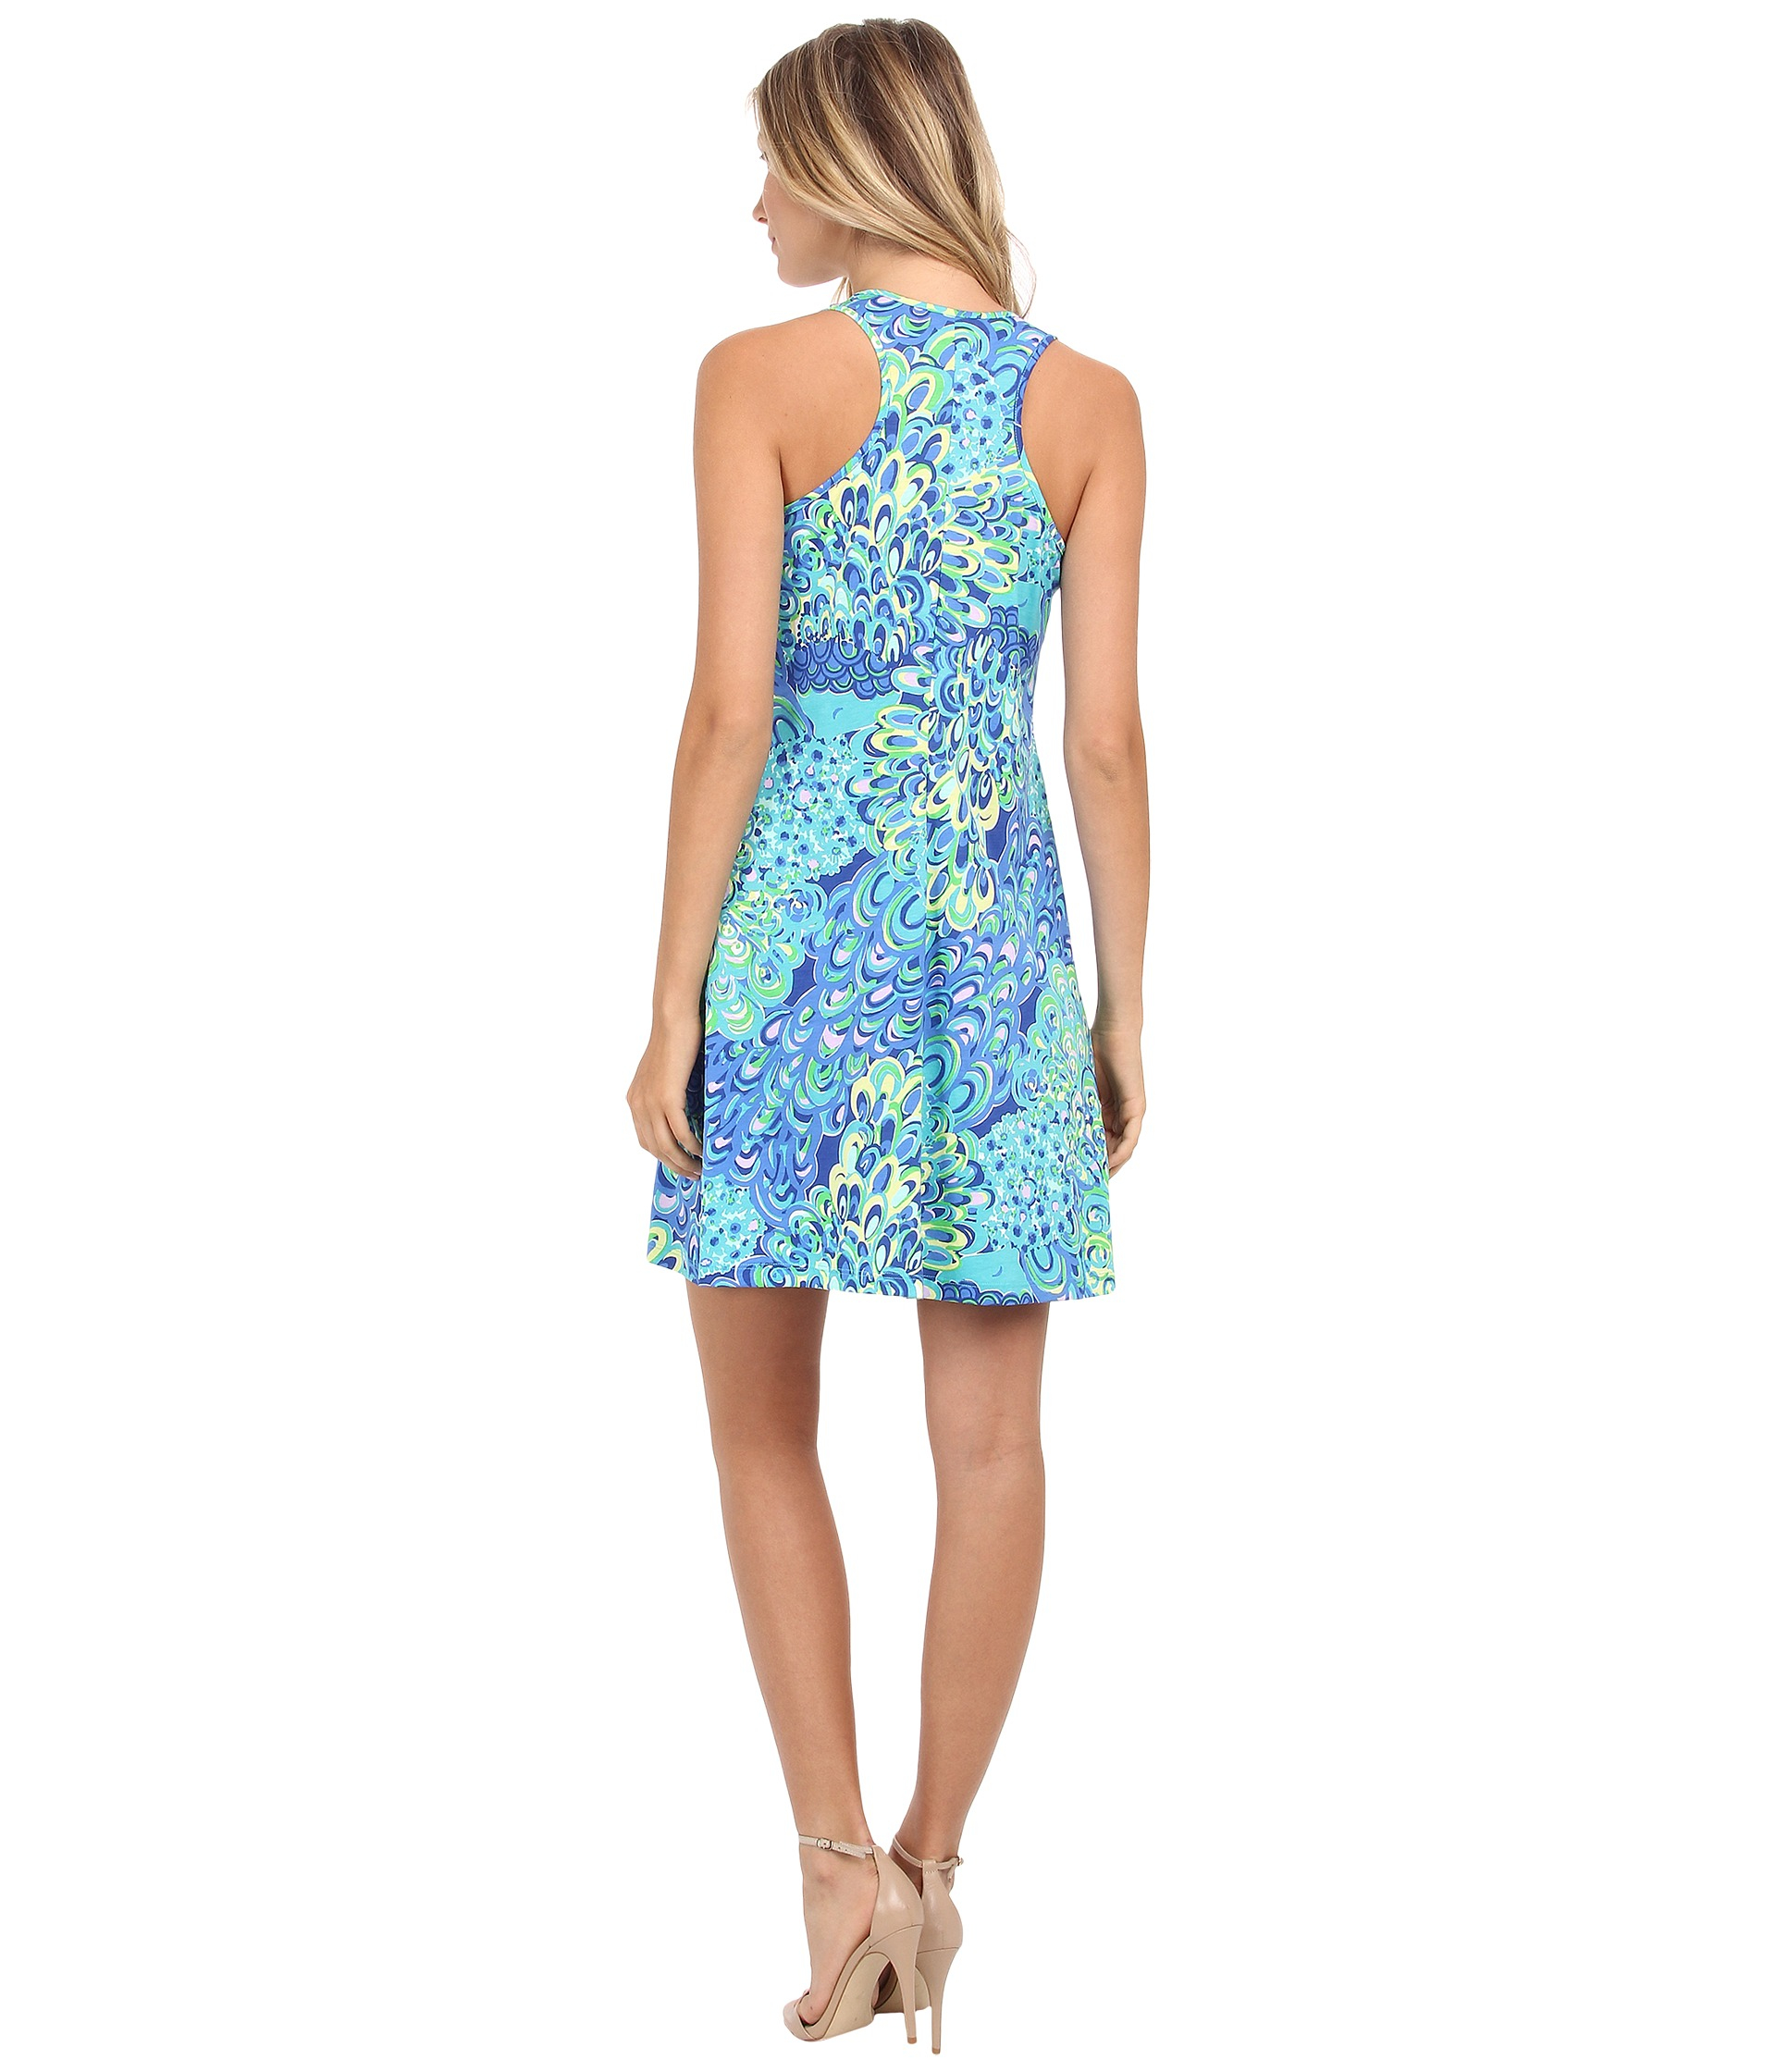 Lyst - Lilly Pulitzer Melle Dress in Blue